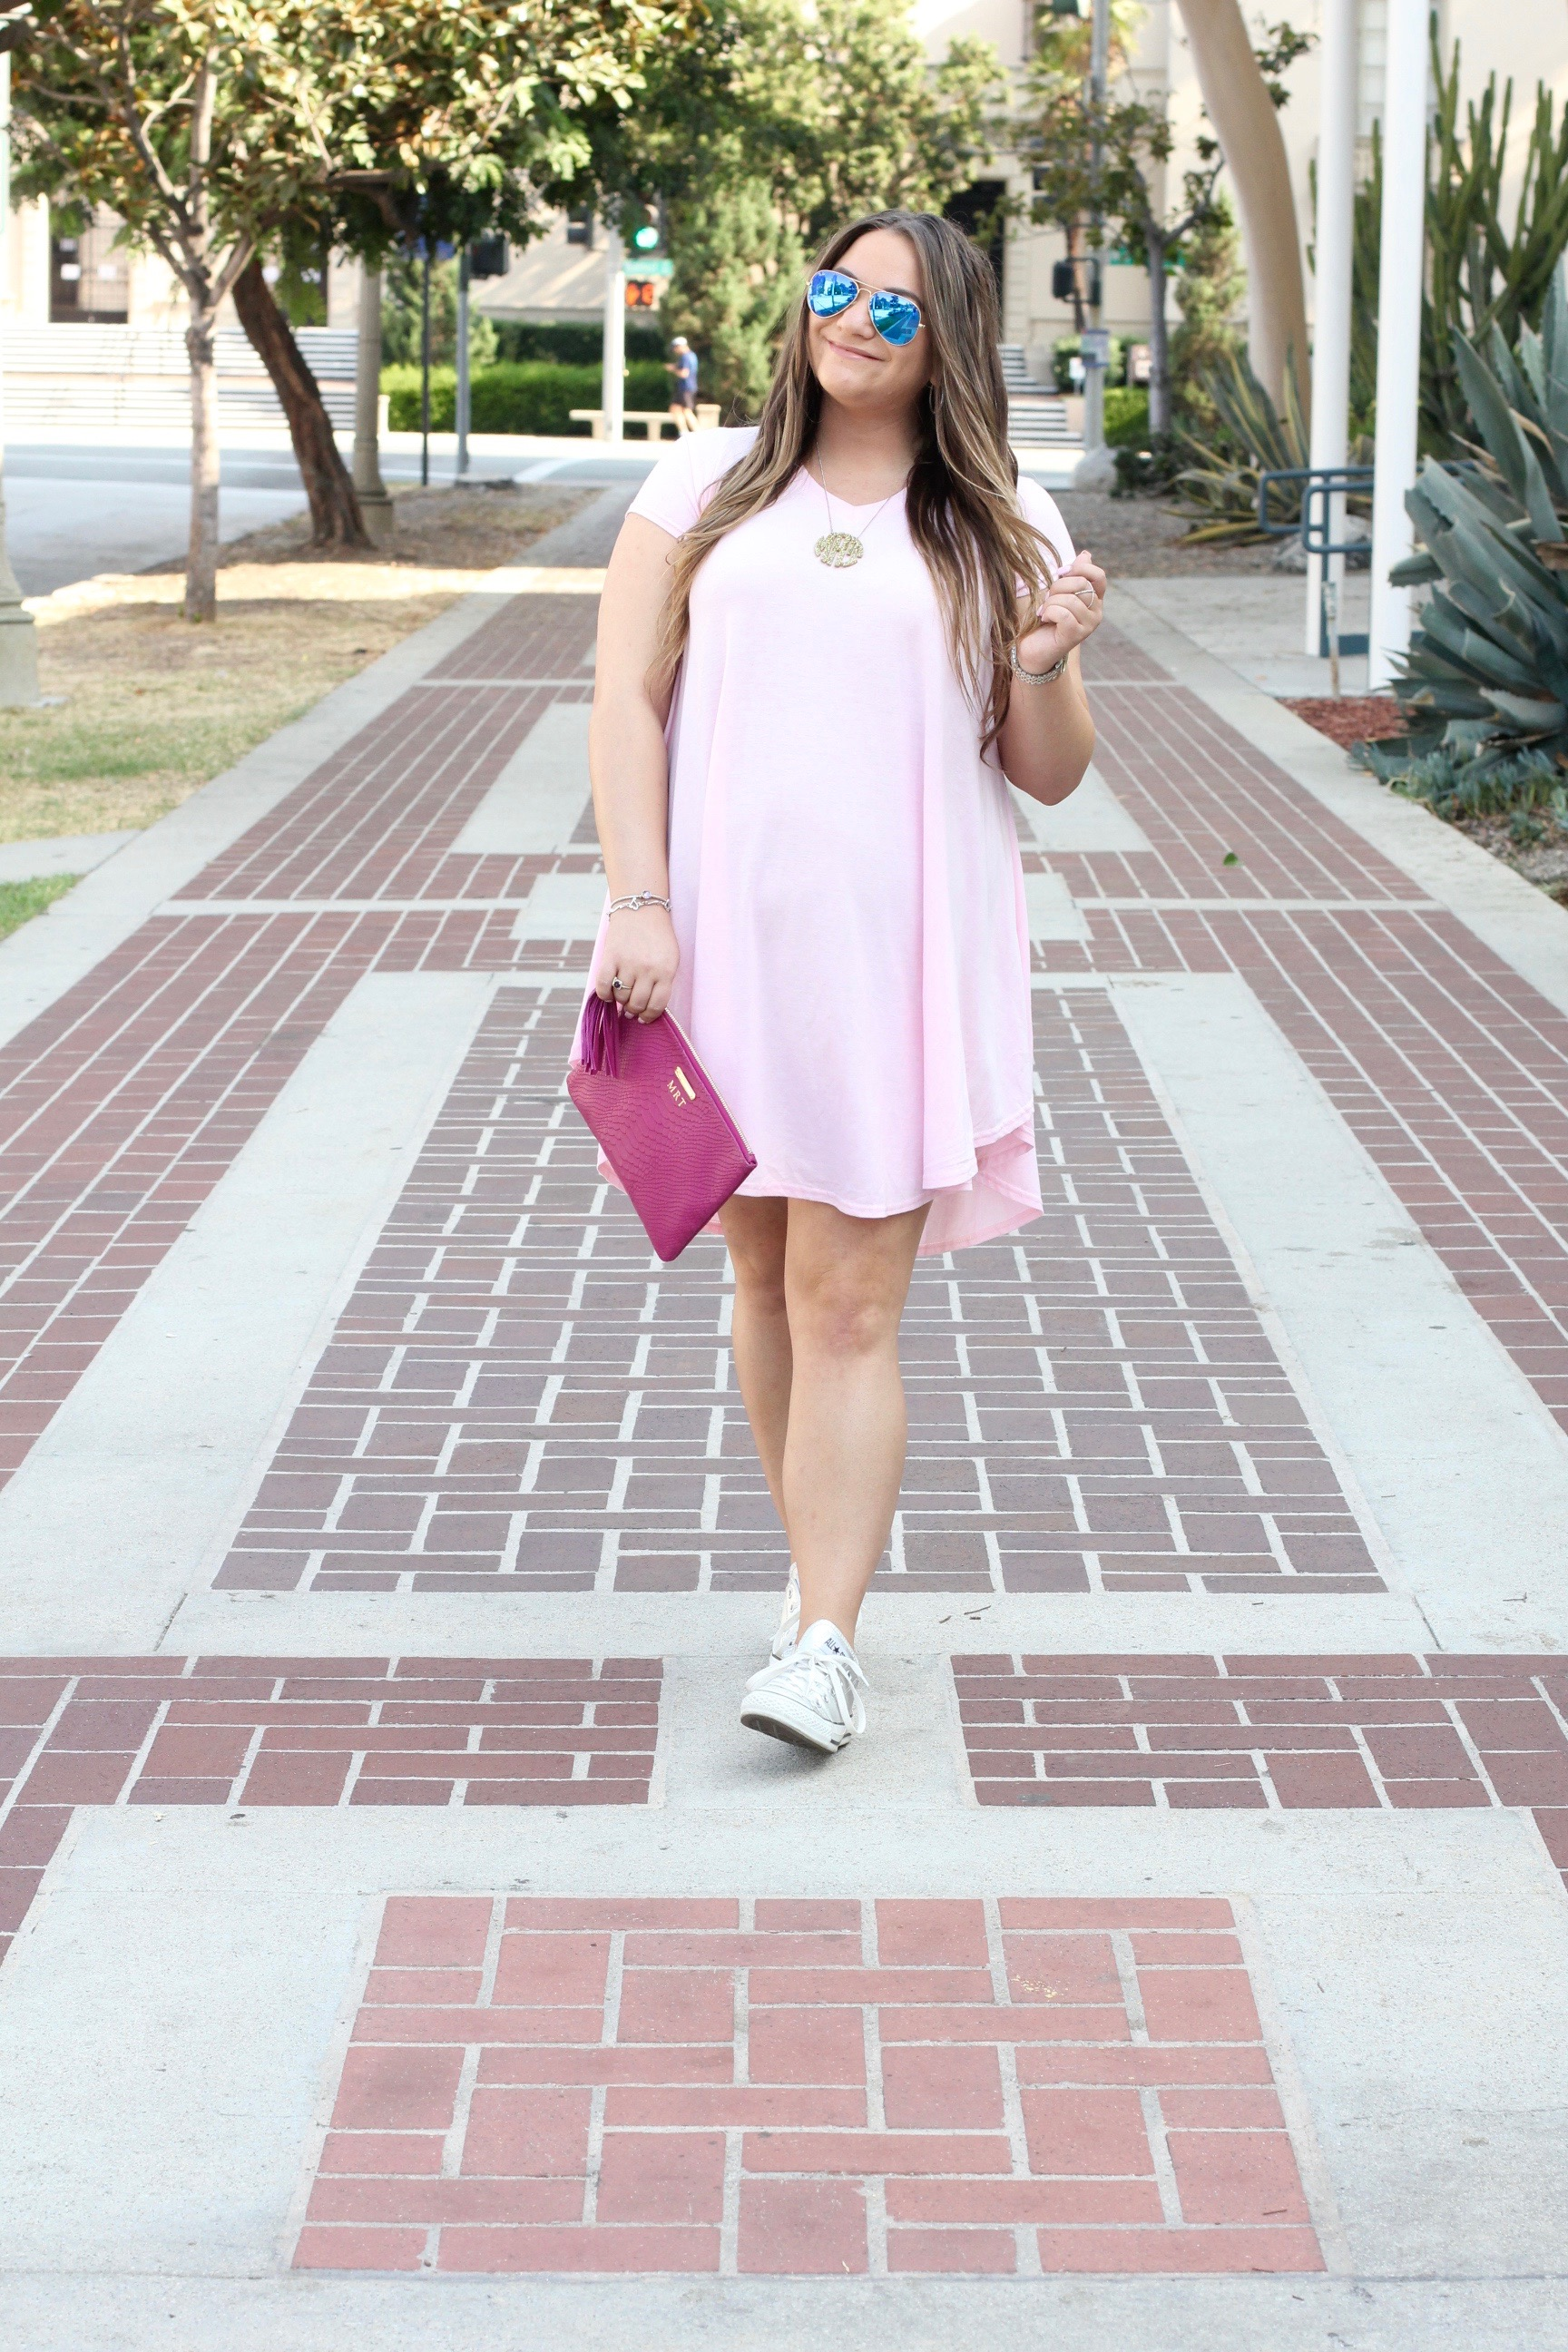 missyonmadison, missy on madison, melissa tierney, converse, back to school style, silver converse, chuck taylors, fashion blogger, fashion blog, pink t shirt dress, pink shirt dress, sammy dress, gigi ny, gigi ny clutch, magenta clutch, ray bans, mirrored aviators, la blogger, cali girl, summer style, labor day weekend, casual wear,